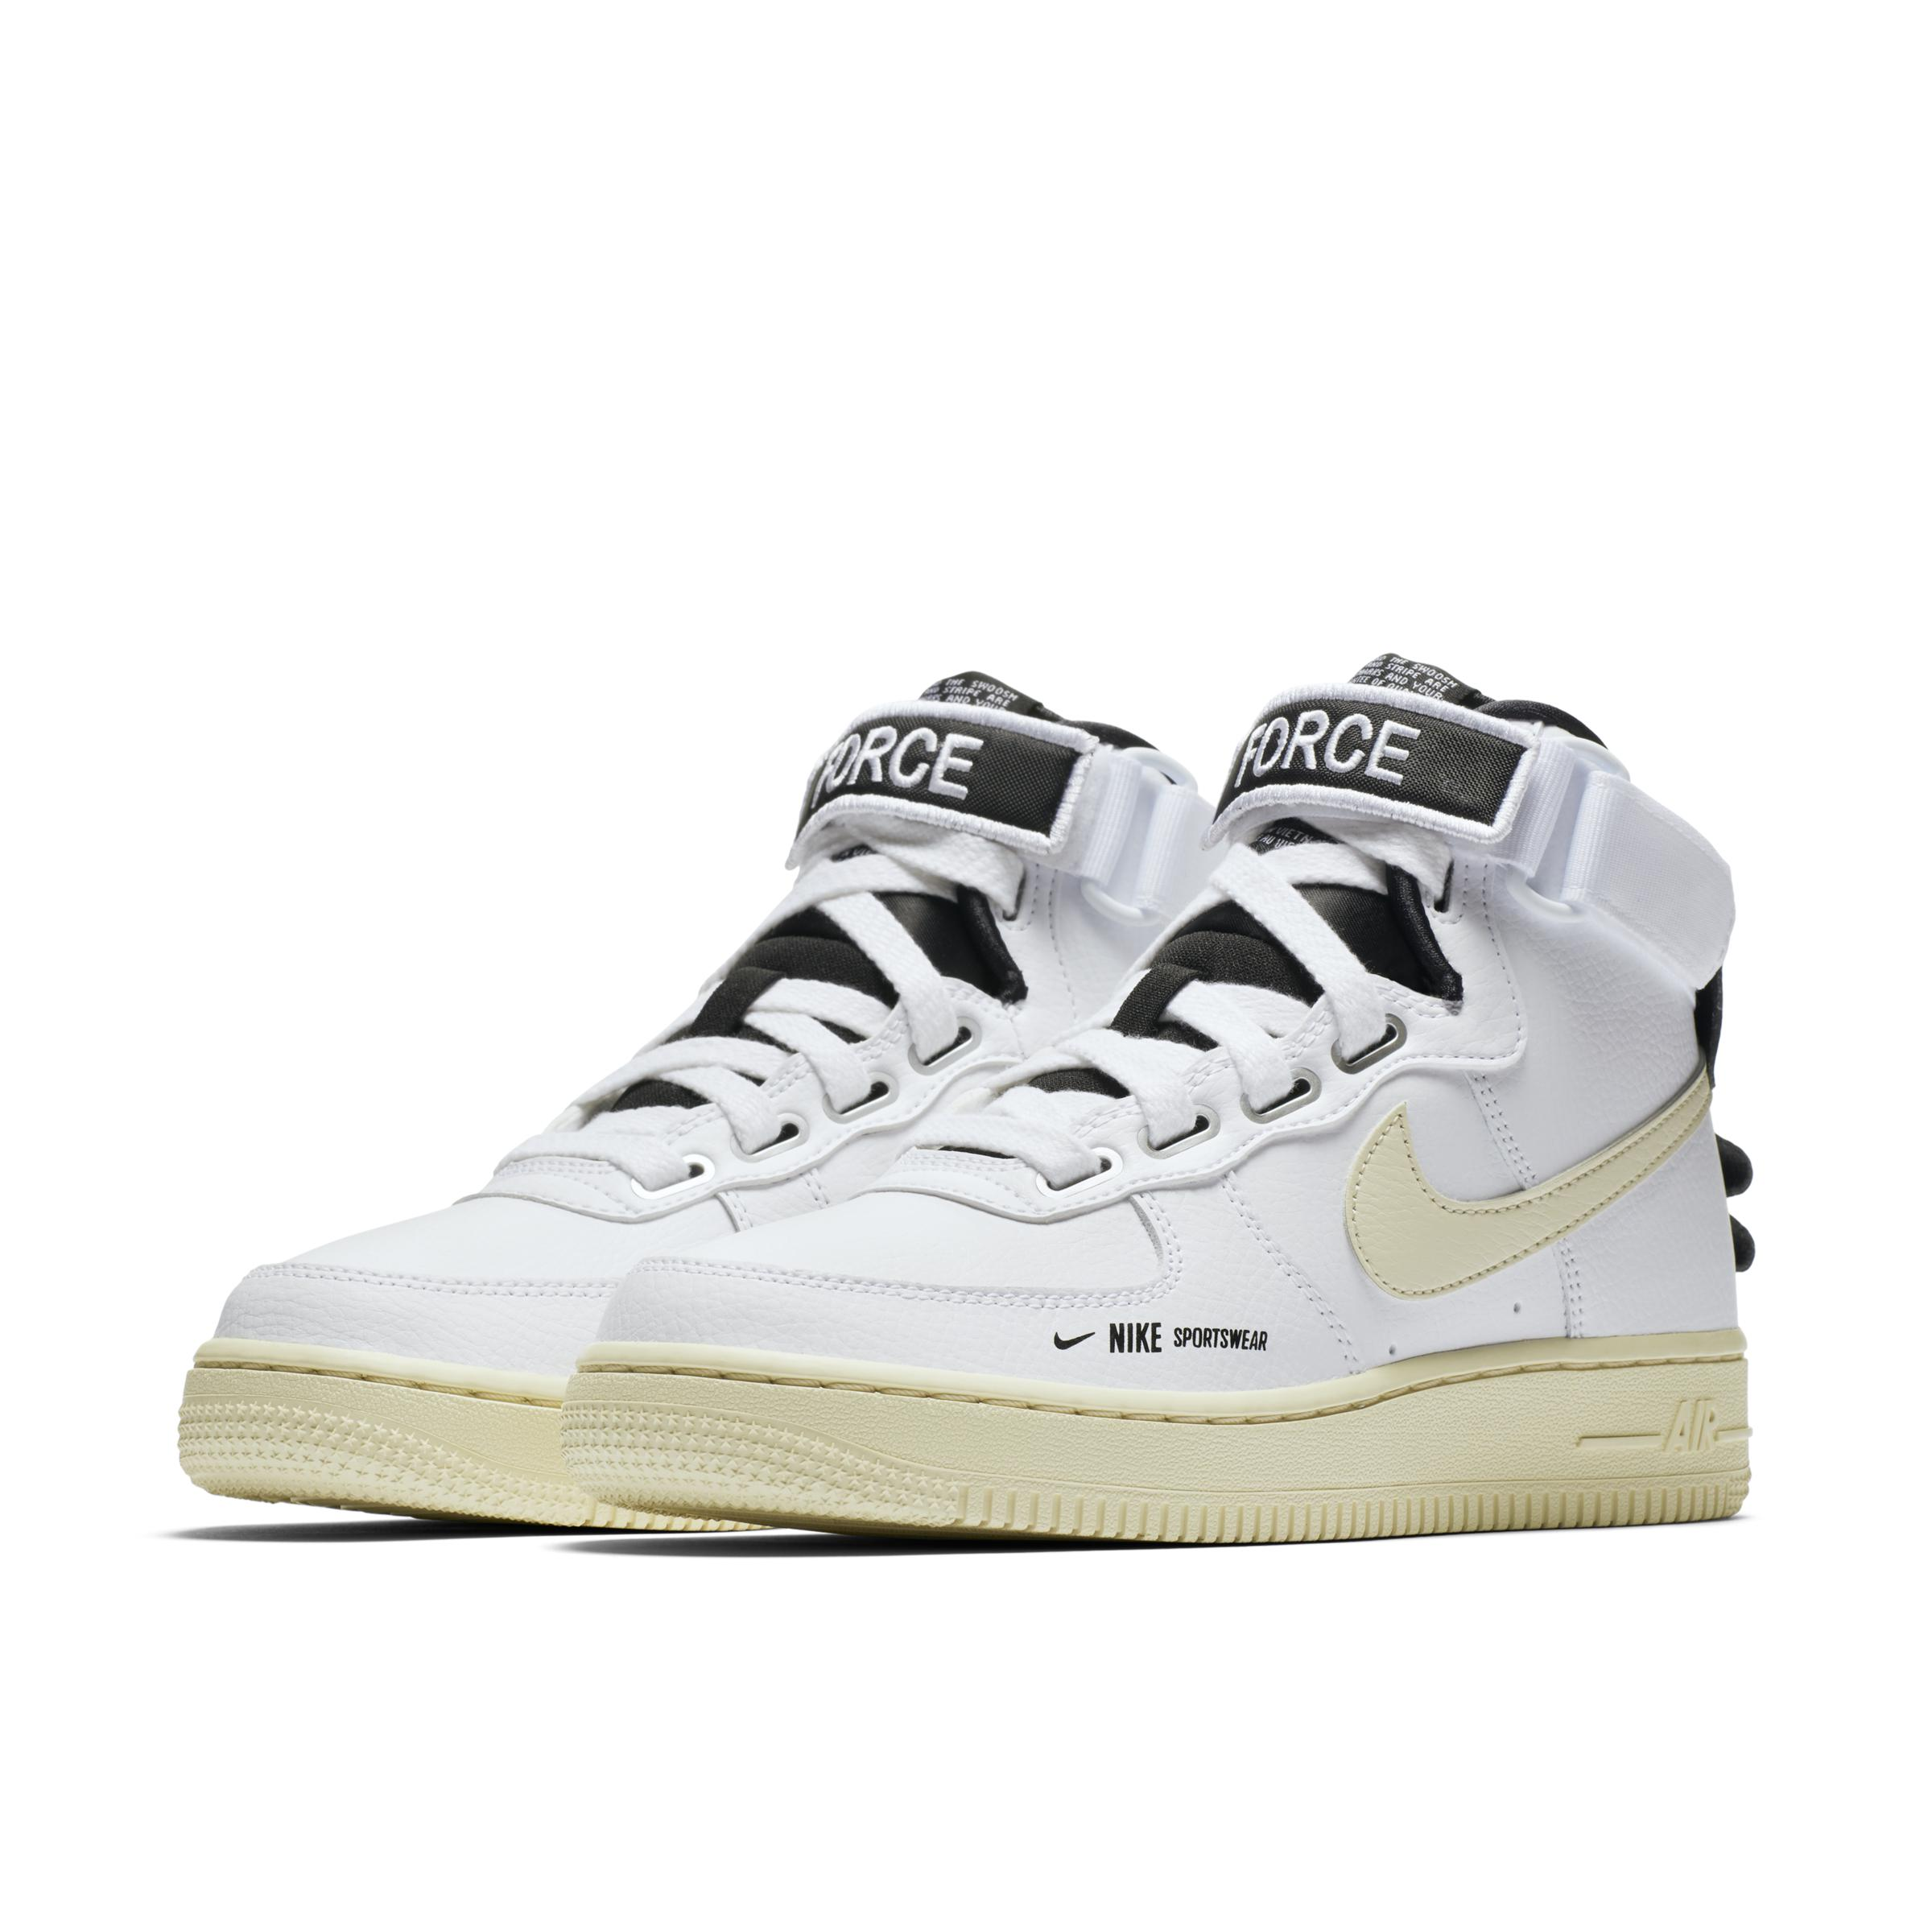 Air Force 1 - Baskets montantes fonctionnelles Cuir Nike en coloris Blanc